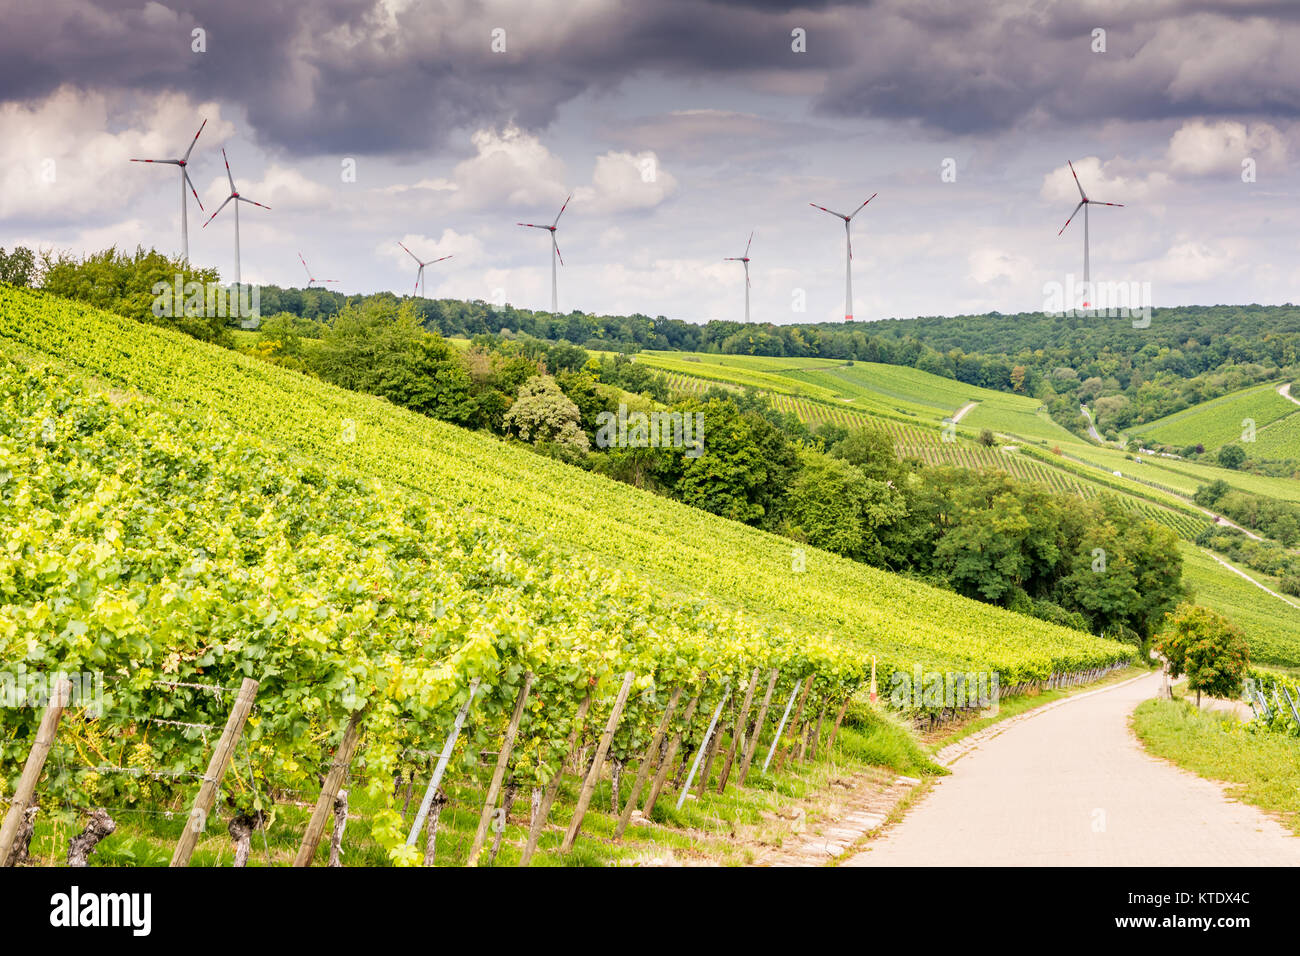 Growing wine and windpower in Franconia (Germany) - Stock Image